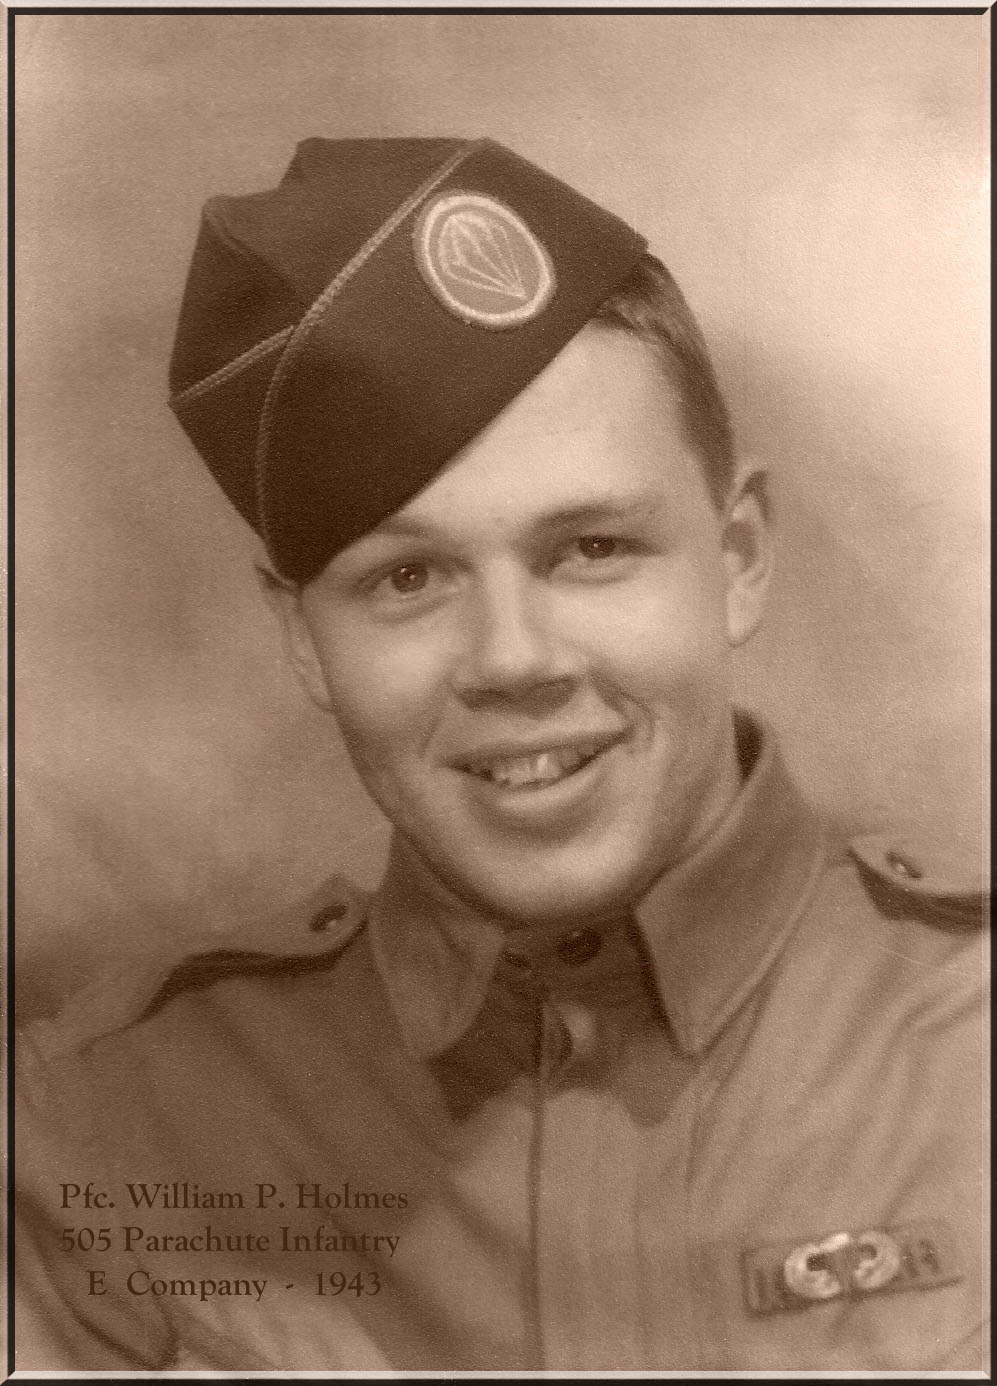 William P Holmes - E company - KIA October 23 1944 in Holland - Bronze Star with oak leaf cluster